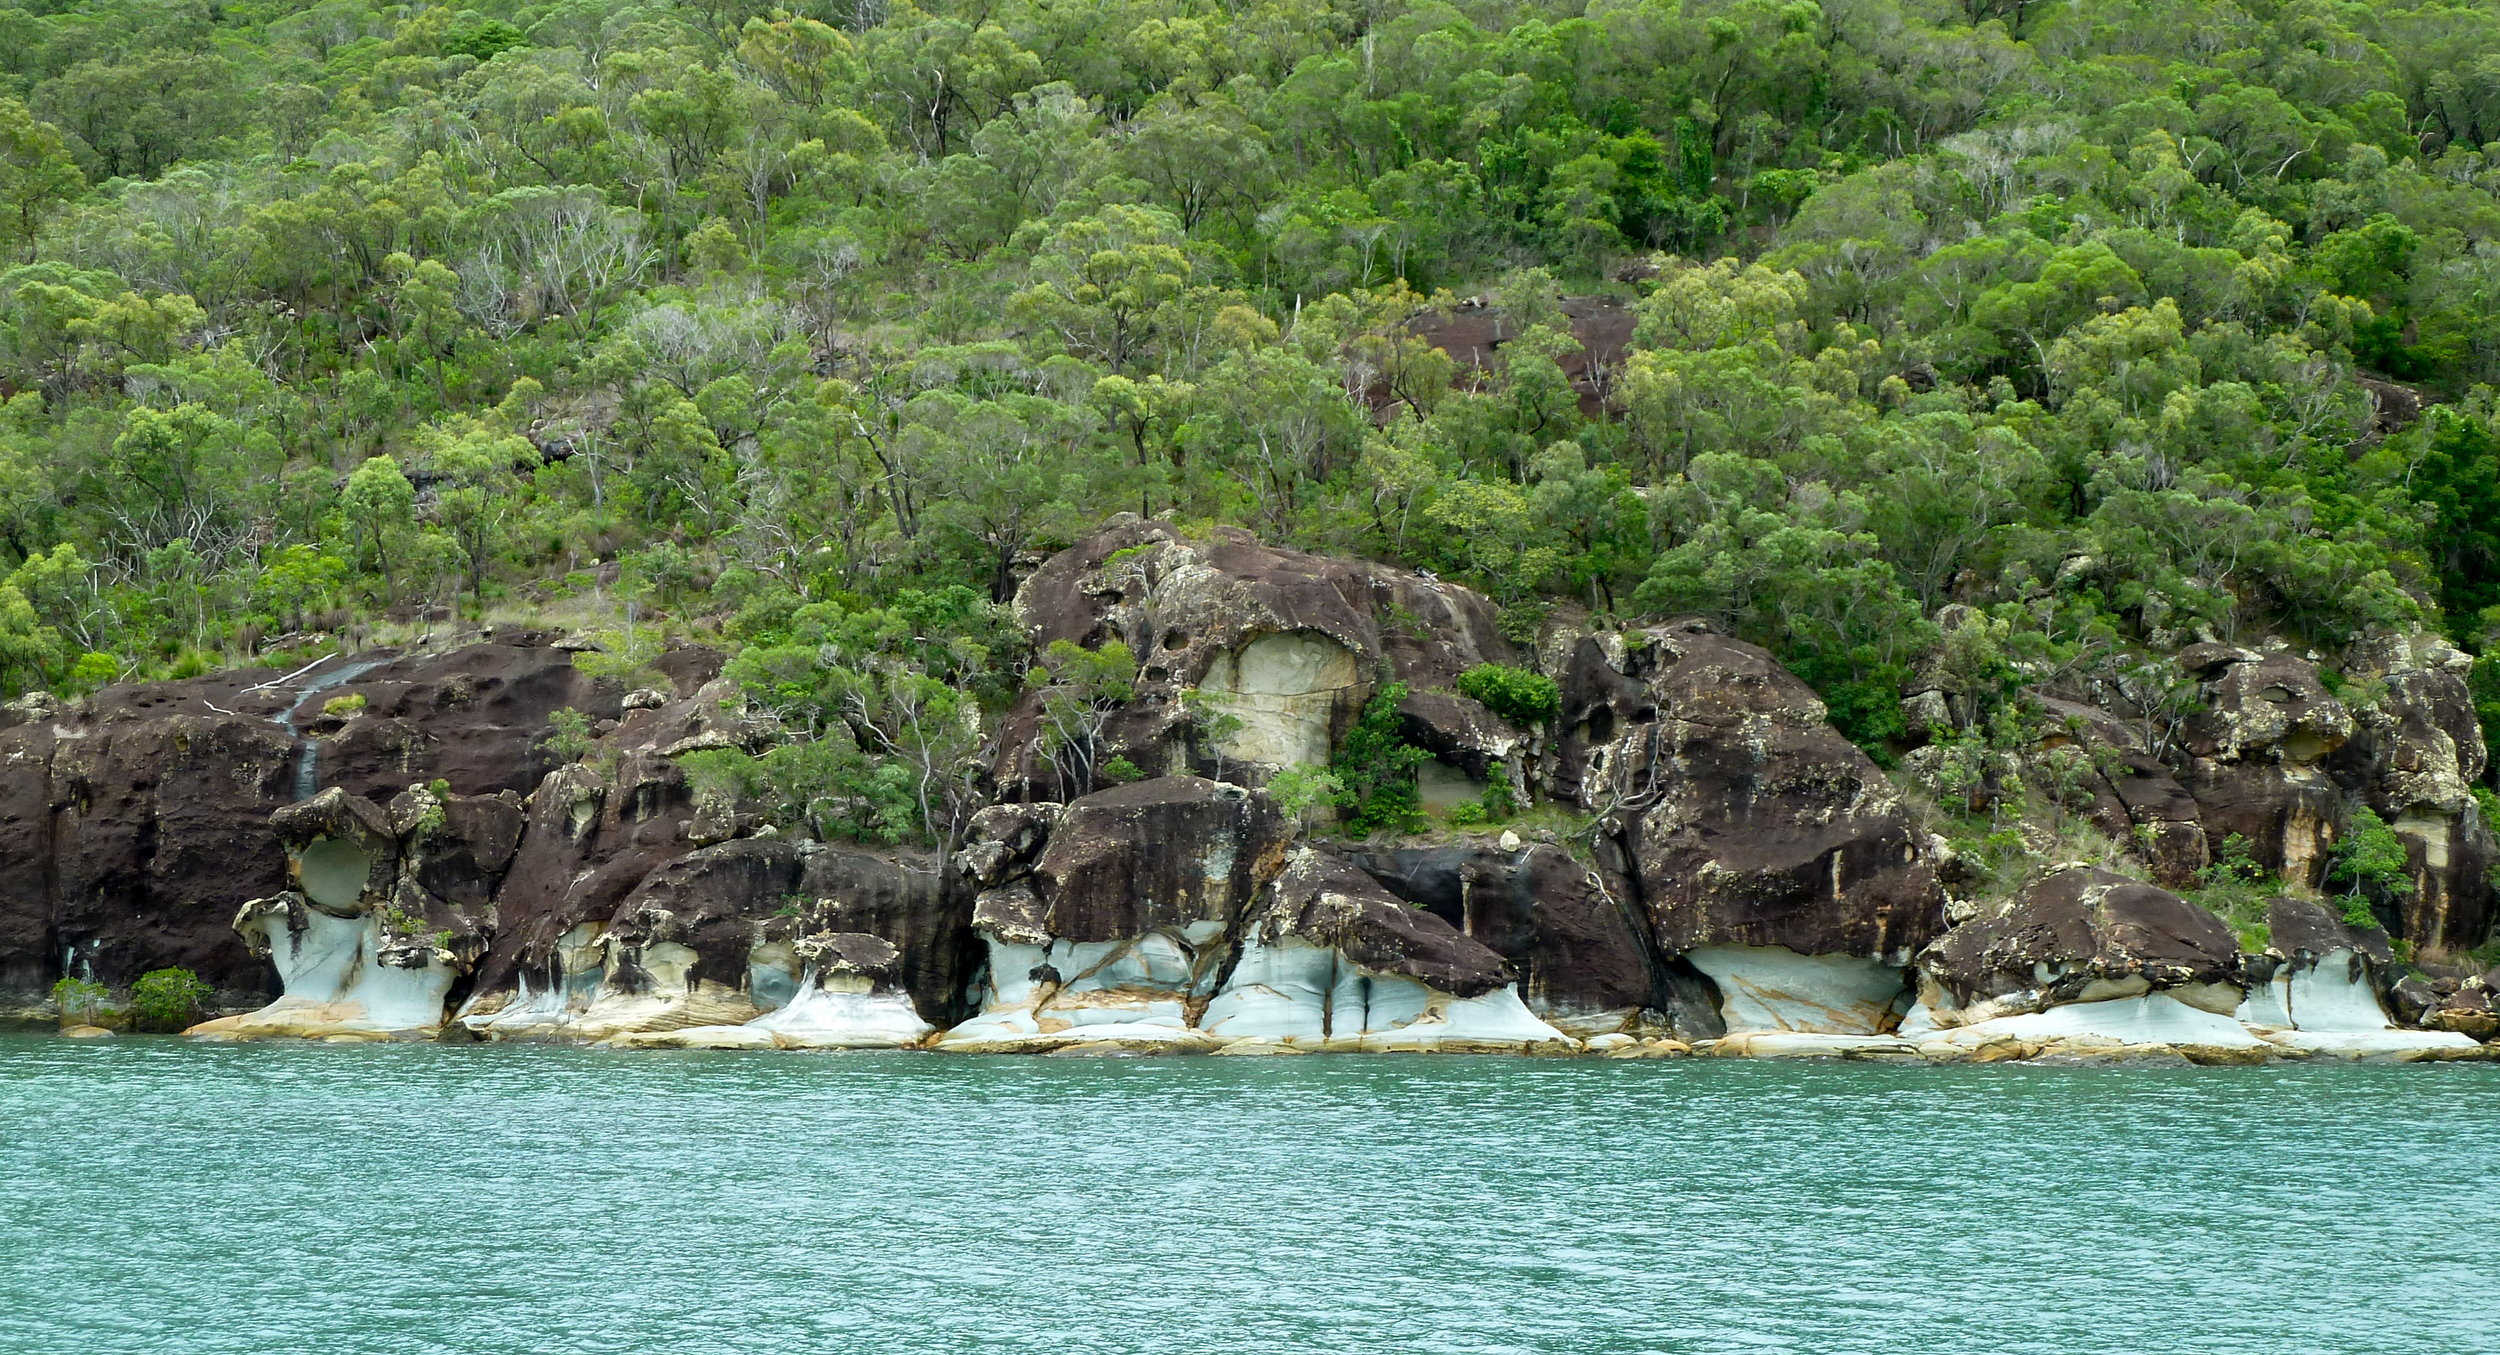 Sandstone formations in Nara Inlet, Hook Island